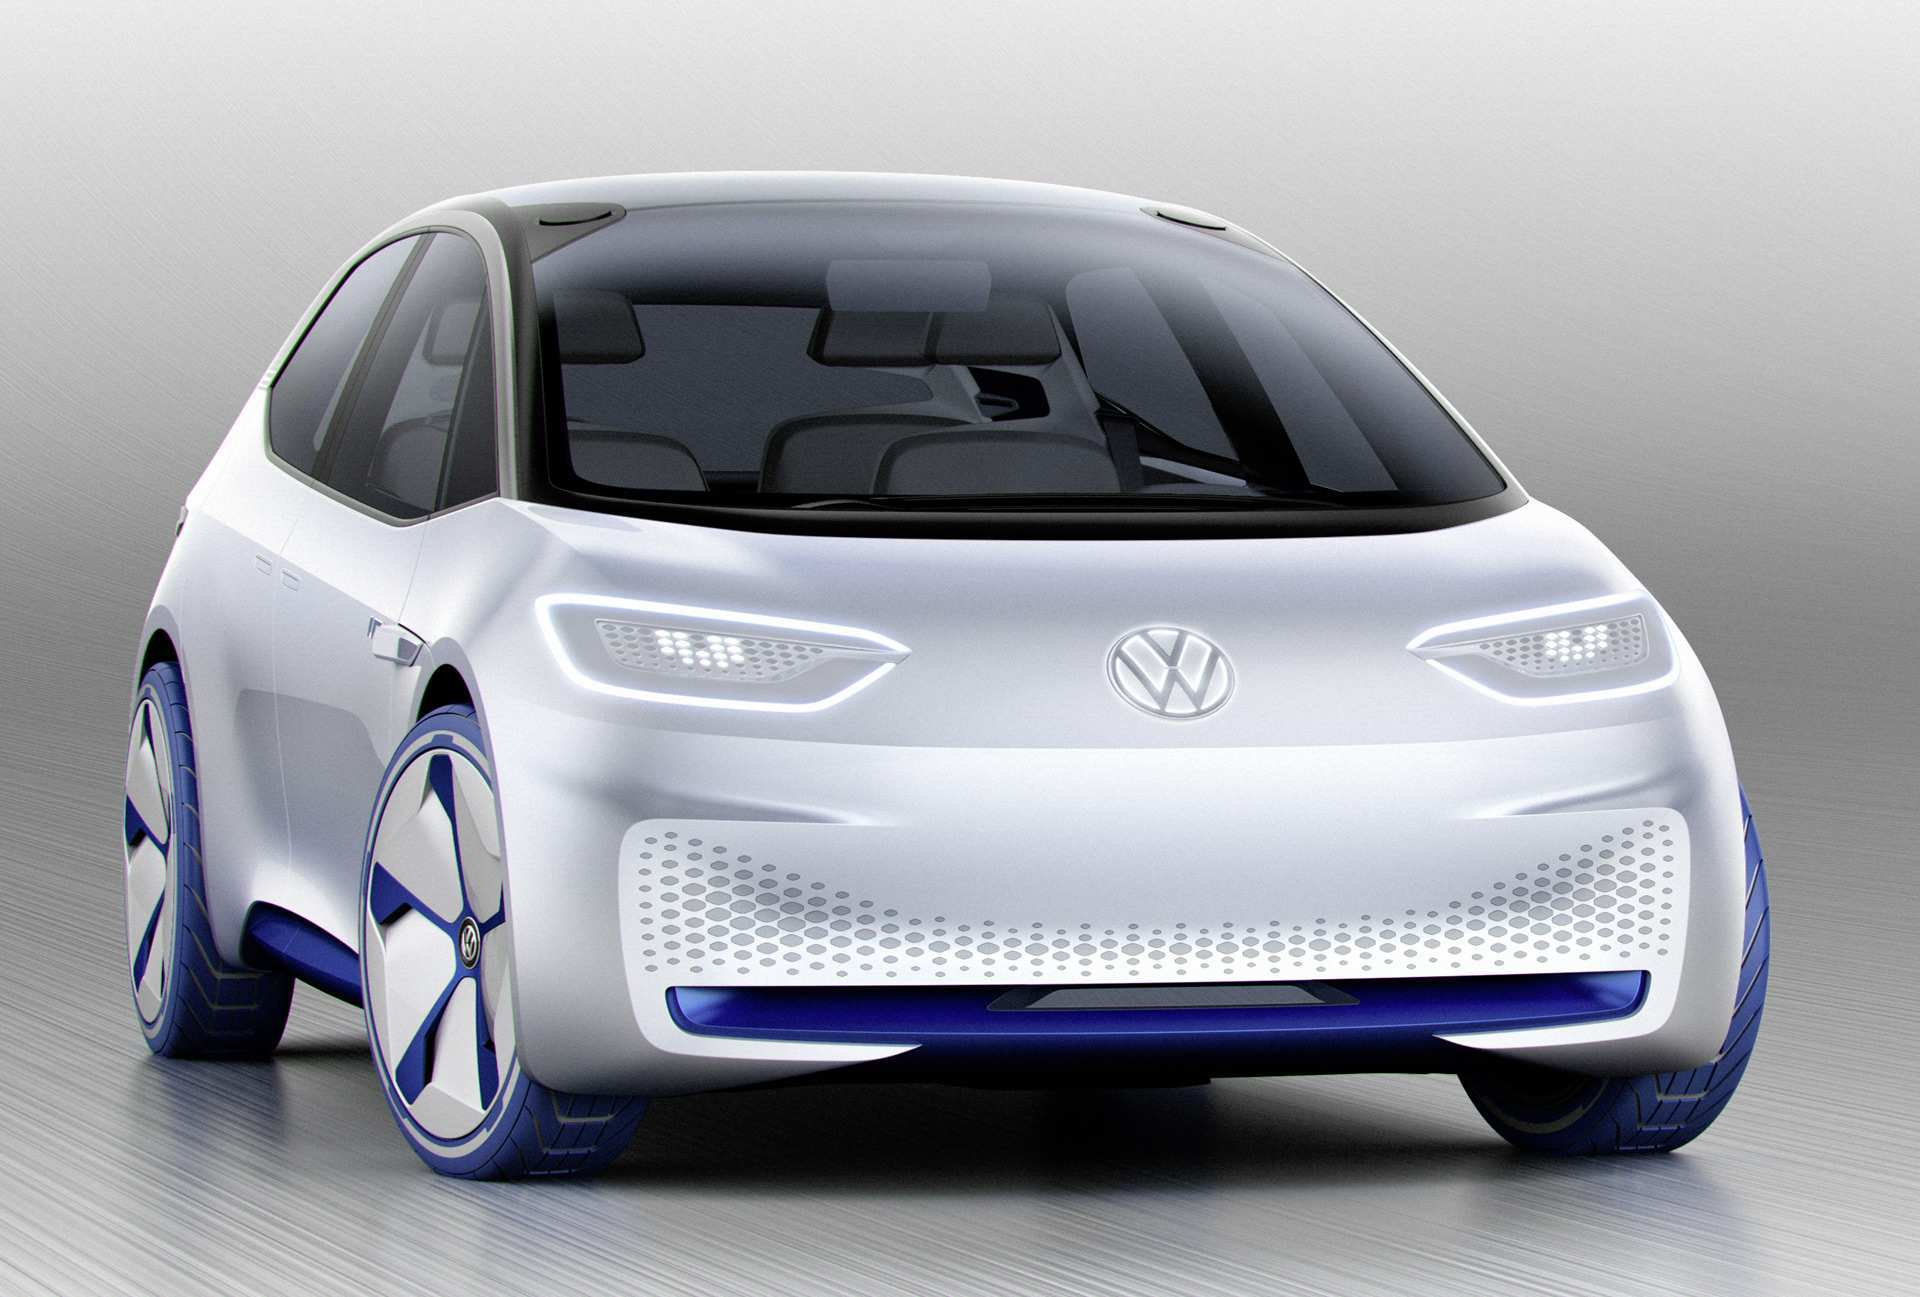 25 New Volkswagen Concept 2020 Price And Release Date